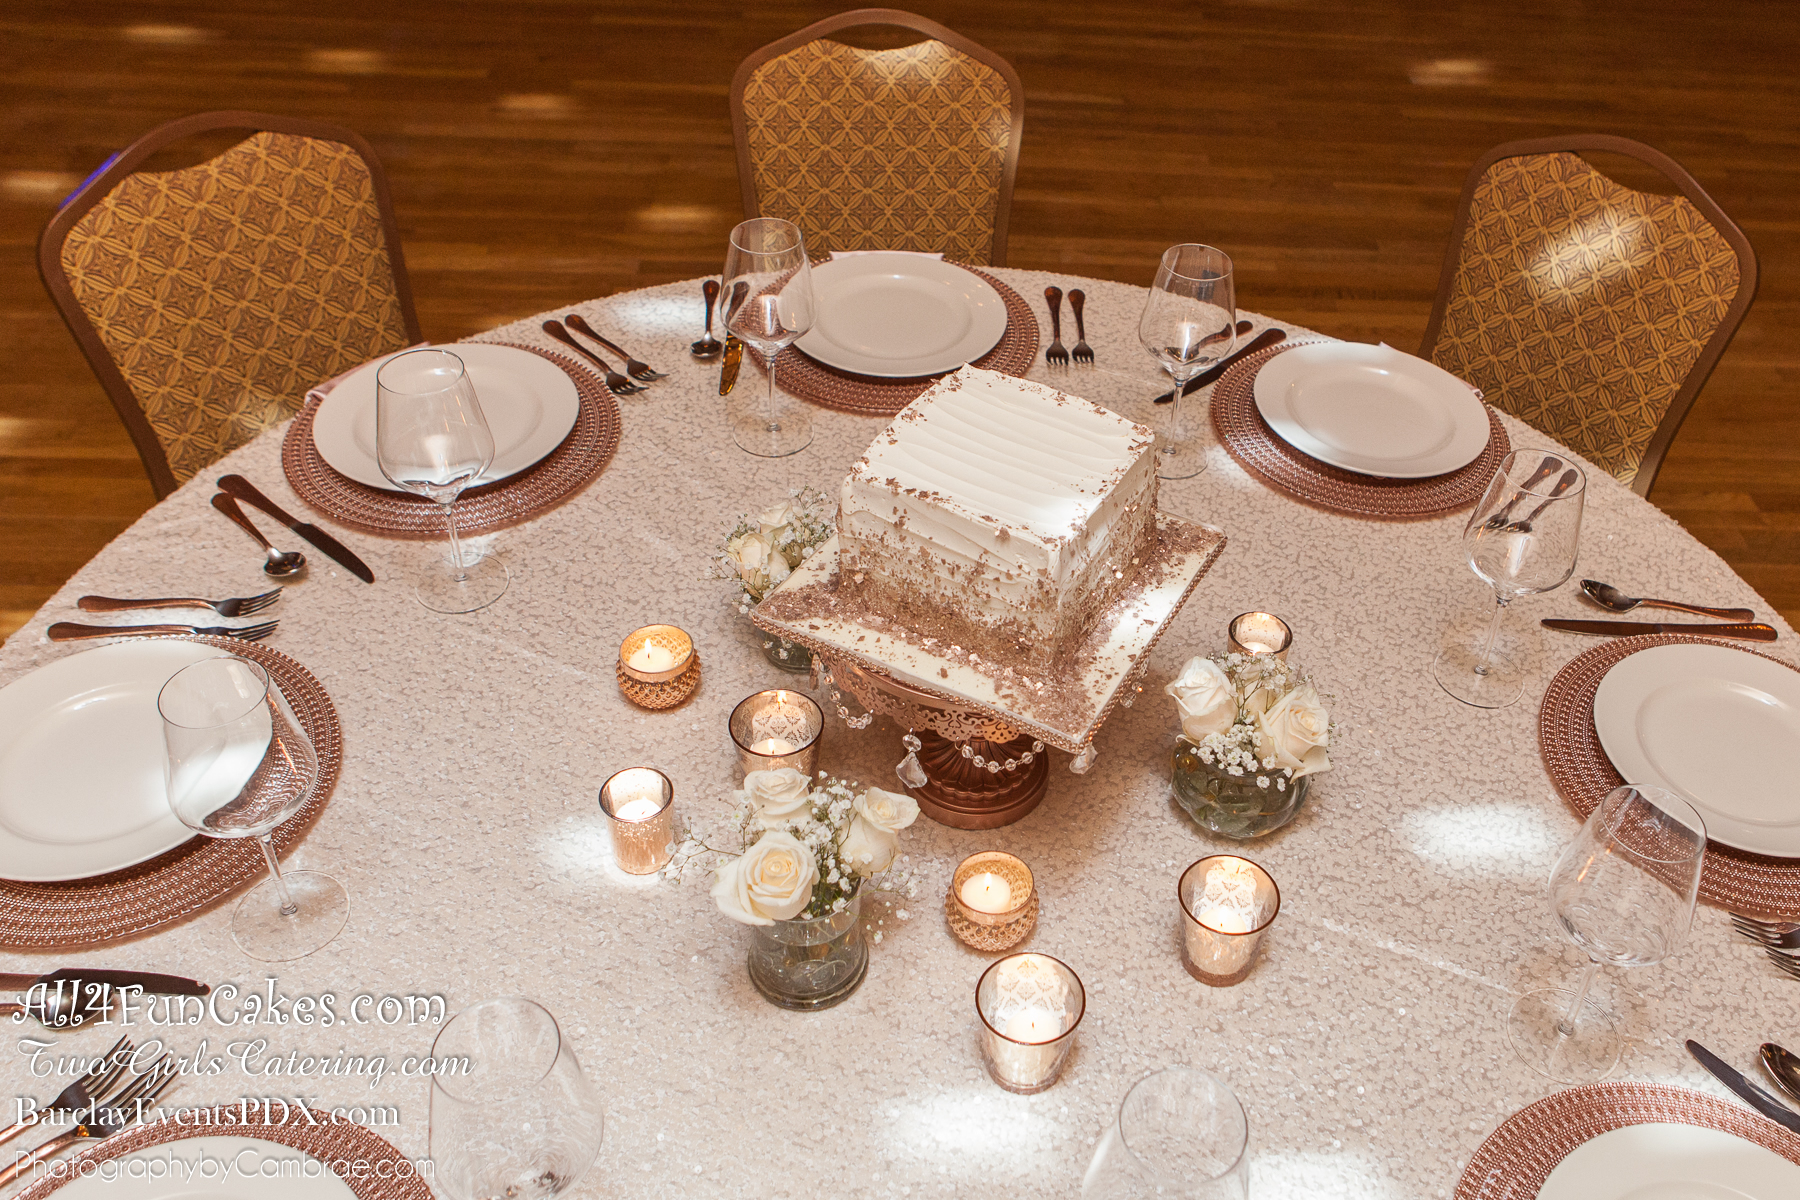 Sugar Free Almond Cake with Amaretto Mousse Filling and Almond/Amaretto Buttercream - Rose Gold and Ivory Simple Elegance Table - All4Fun Cakes LLC 2018 - Two Girls Catering